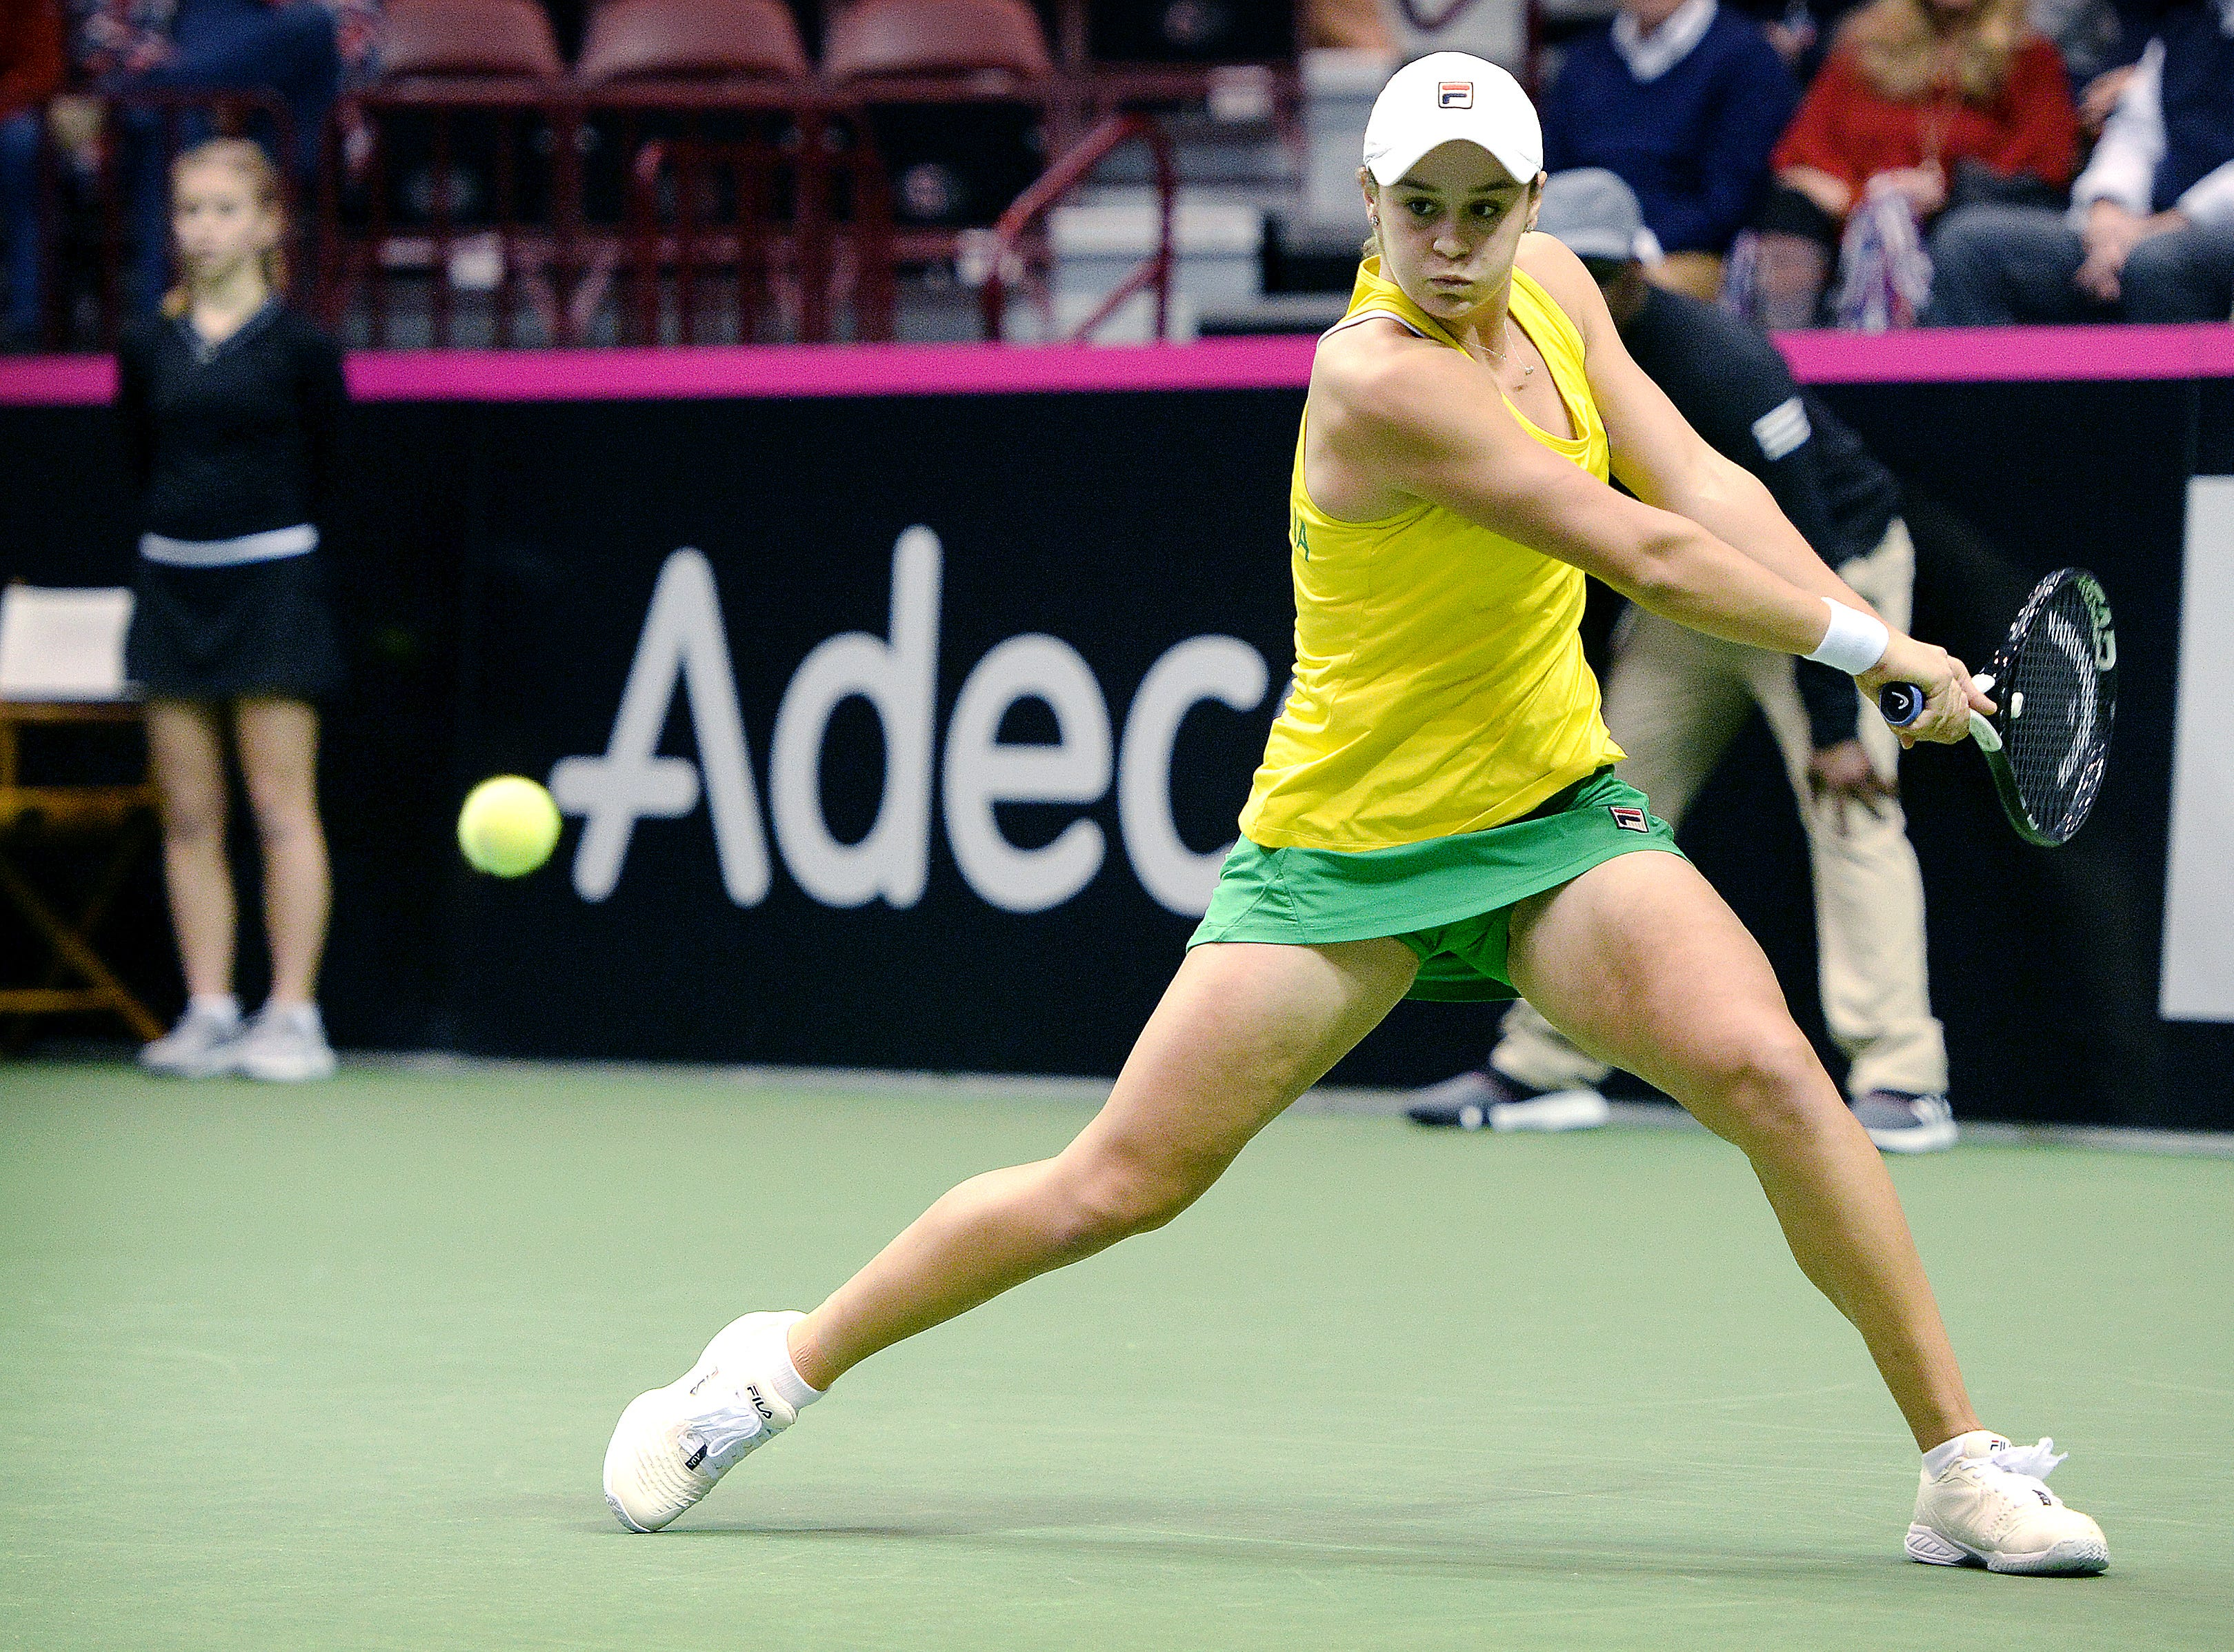 Team Australia's Ashleigh Barty returns the ball in her match against Team USA's Madison Keys in the first round of the Fed Cup at the U.S. Cellular Center on Feb. 10, 2019.